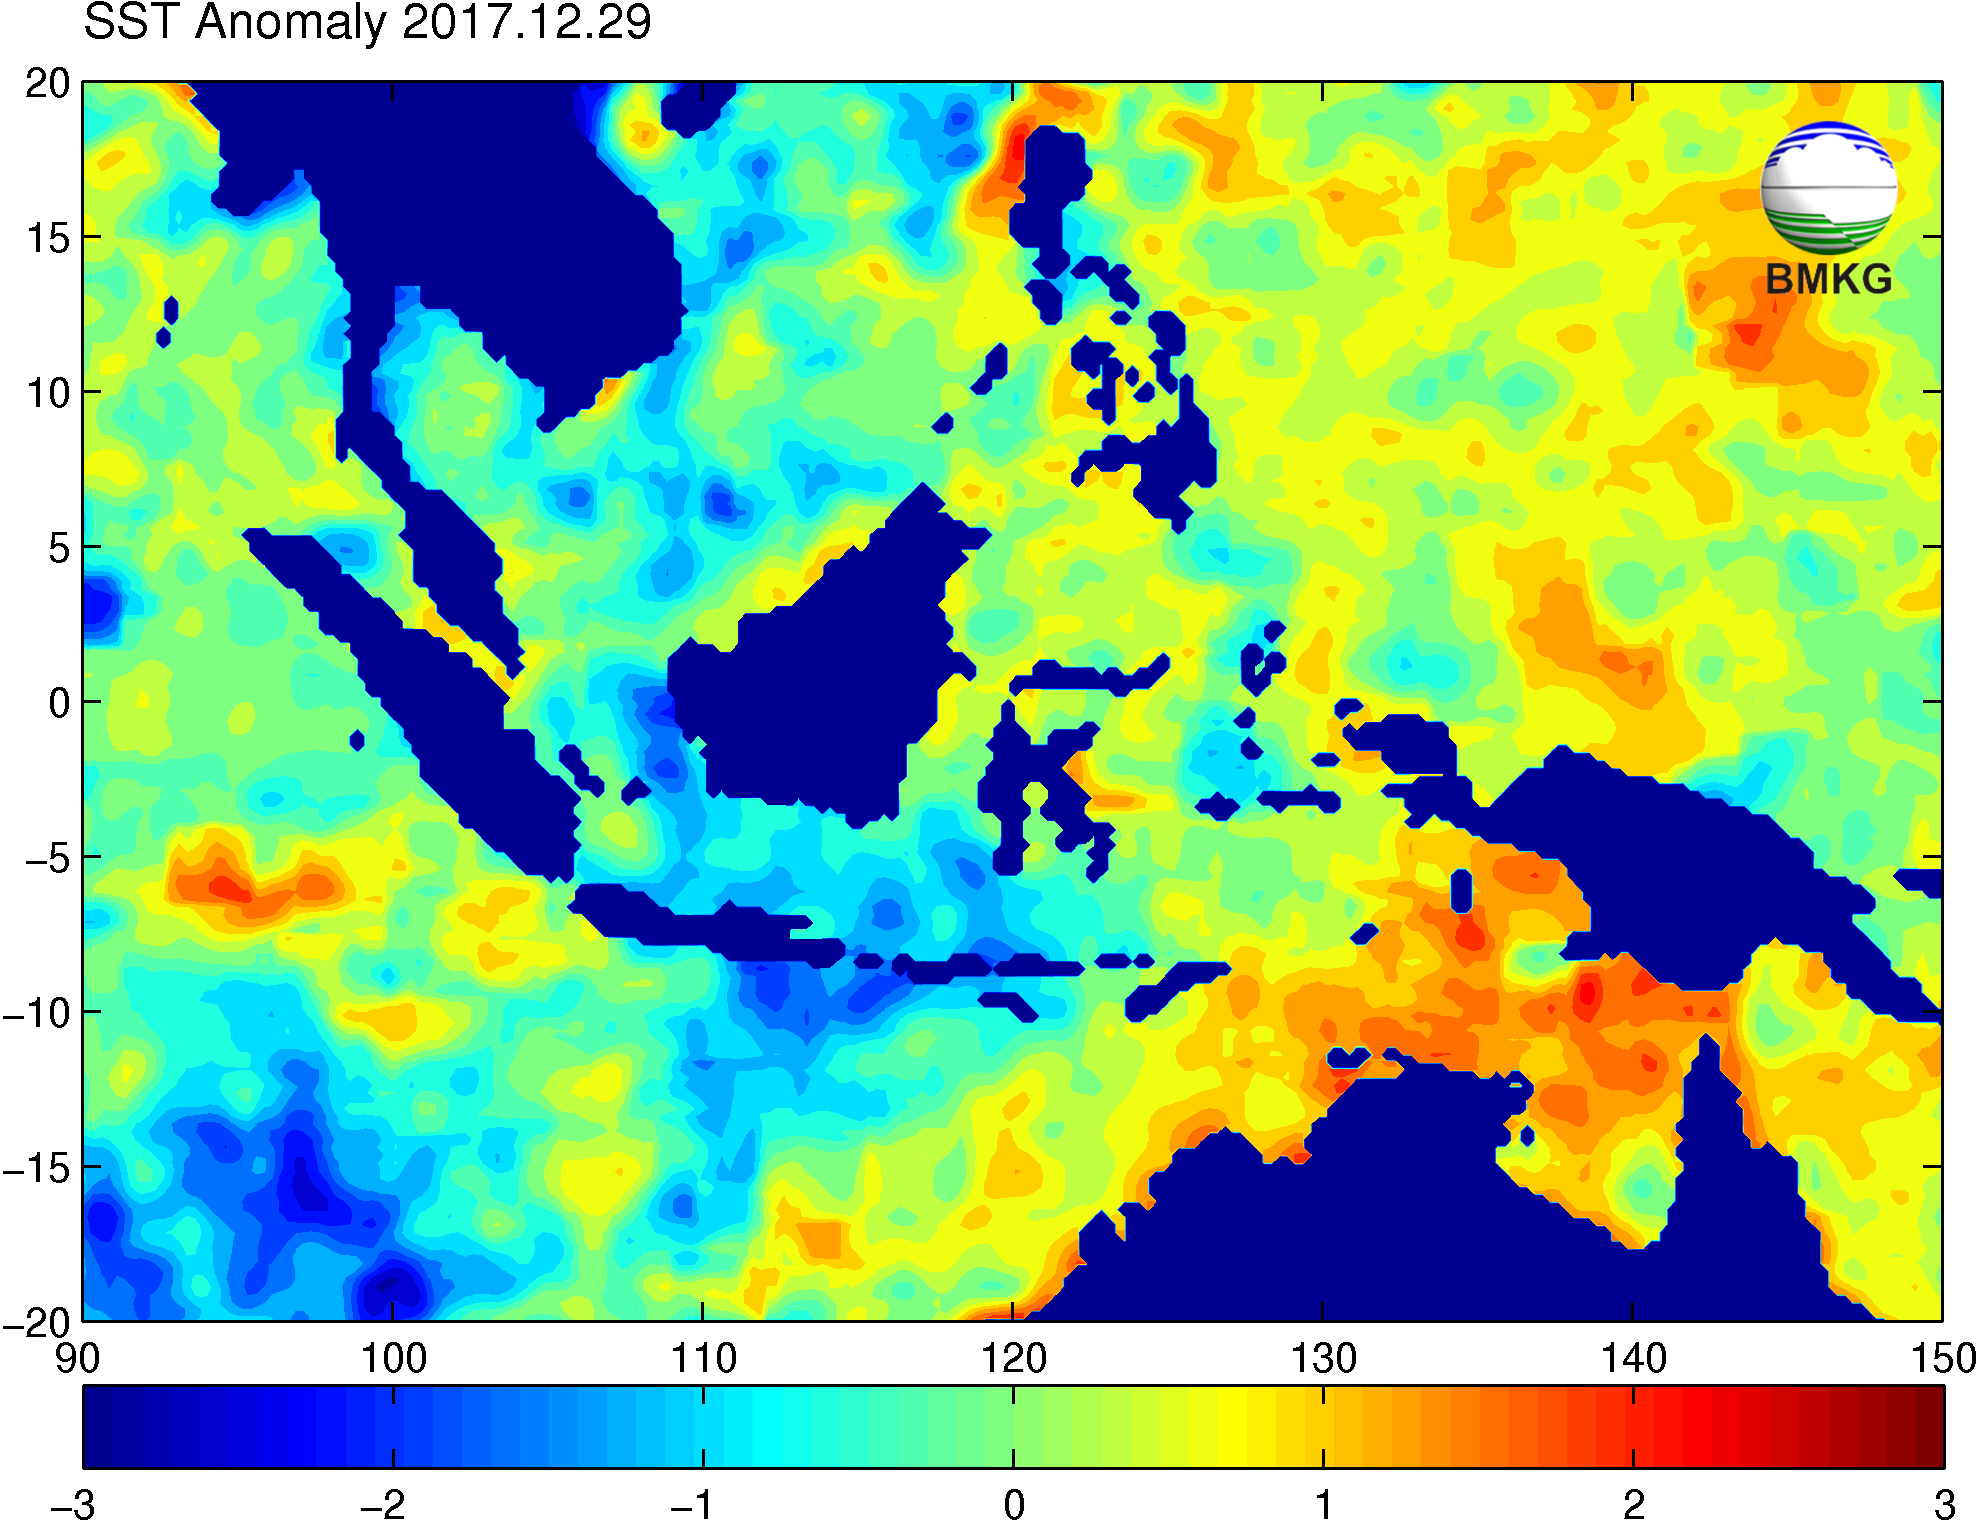 SST Anomaly Indonesia